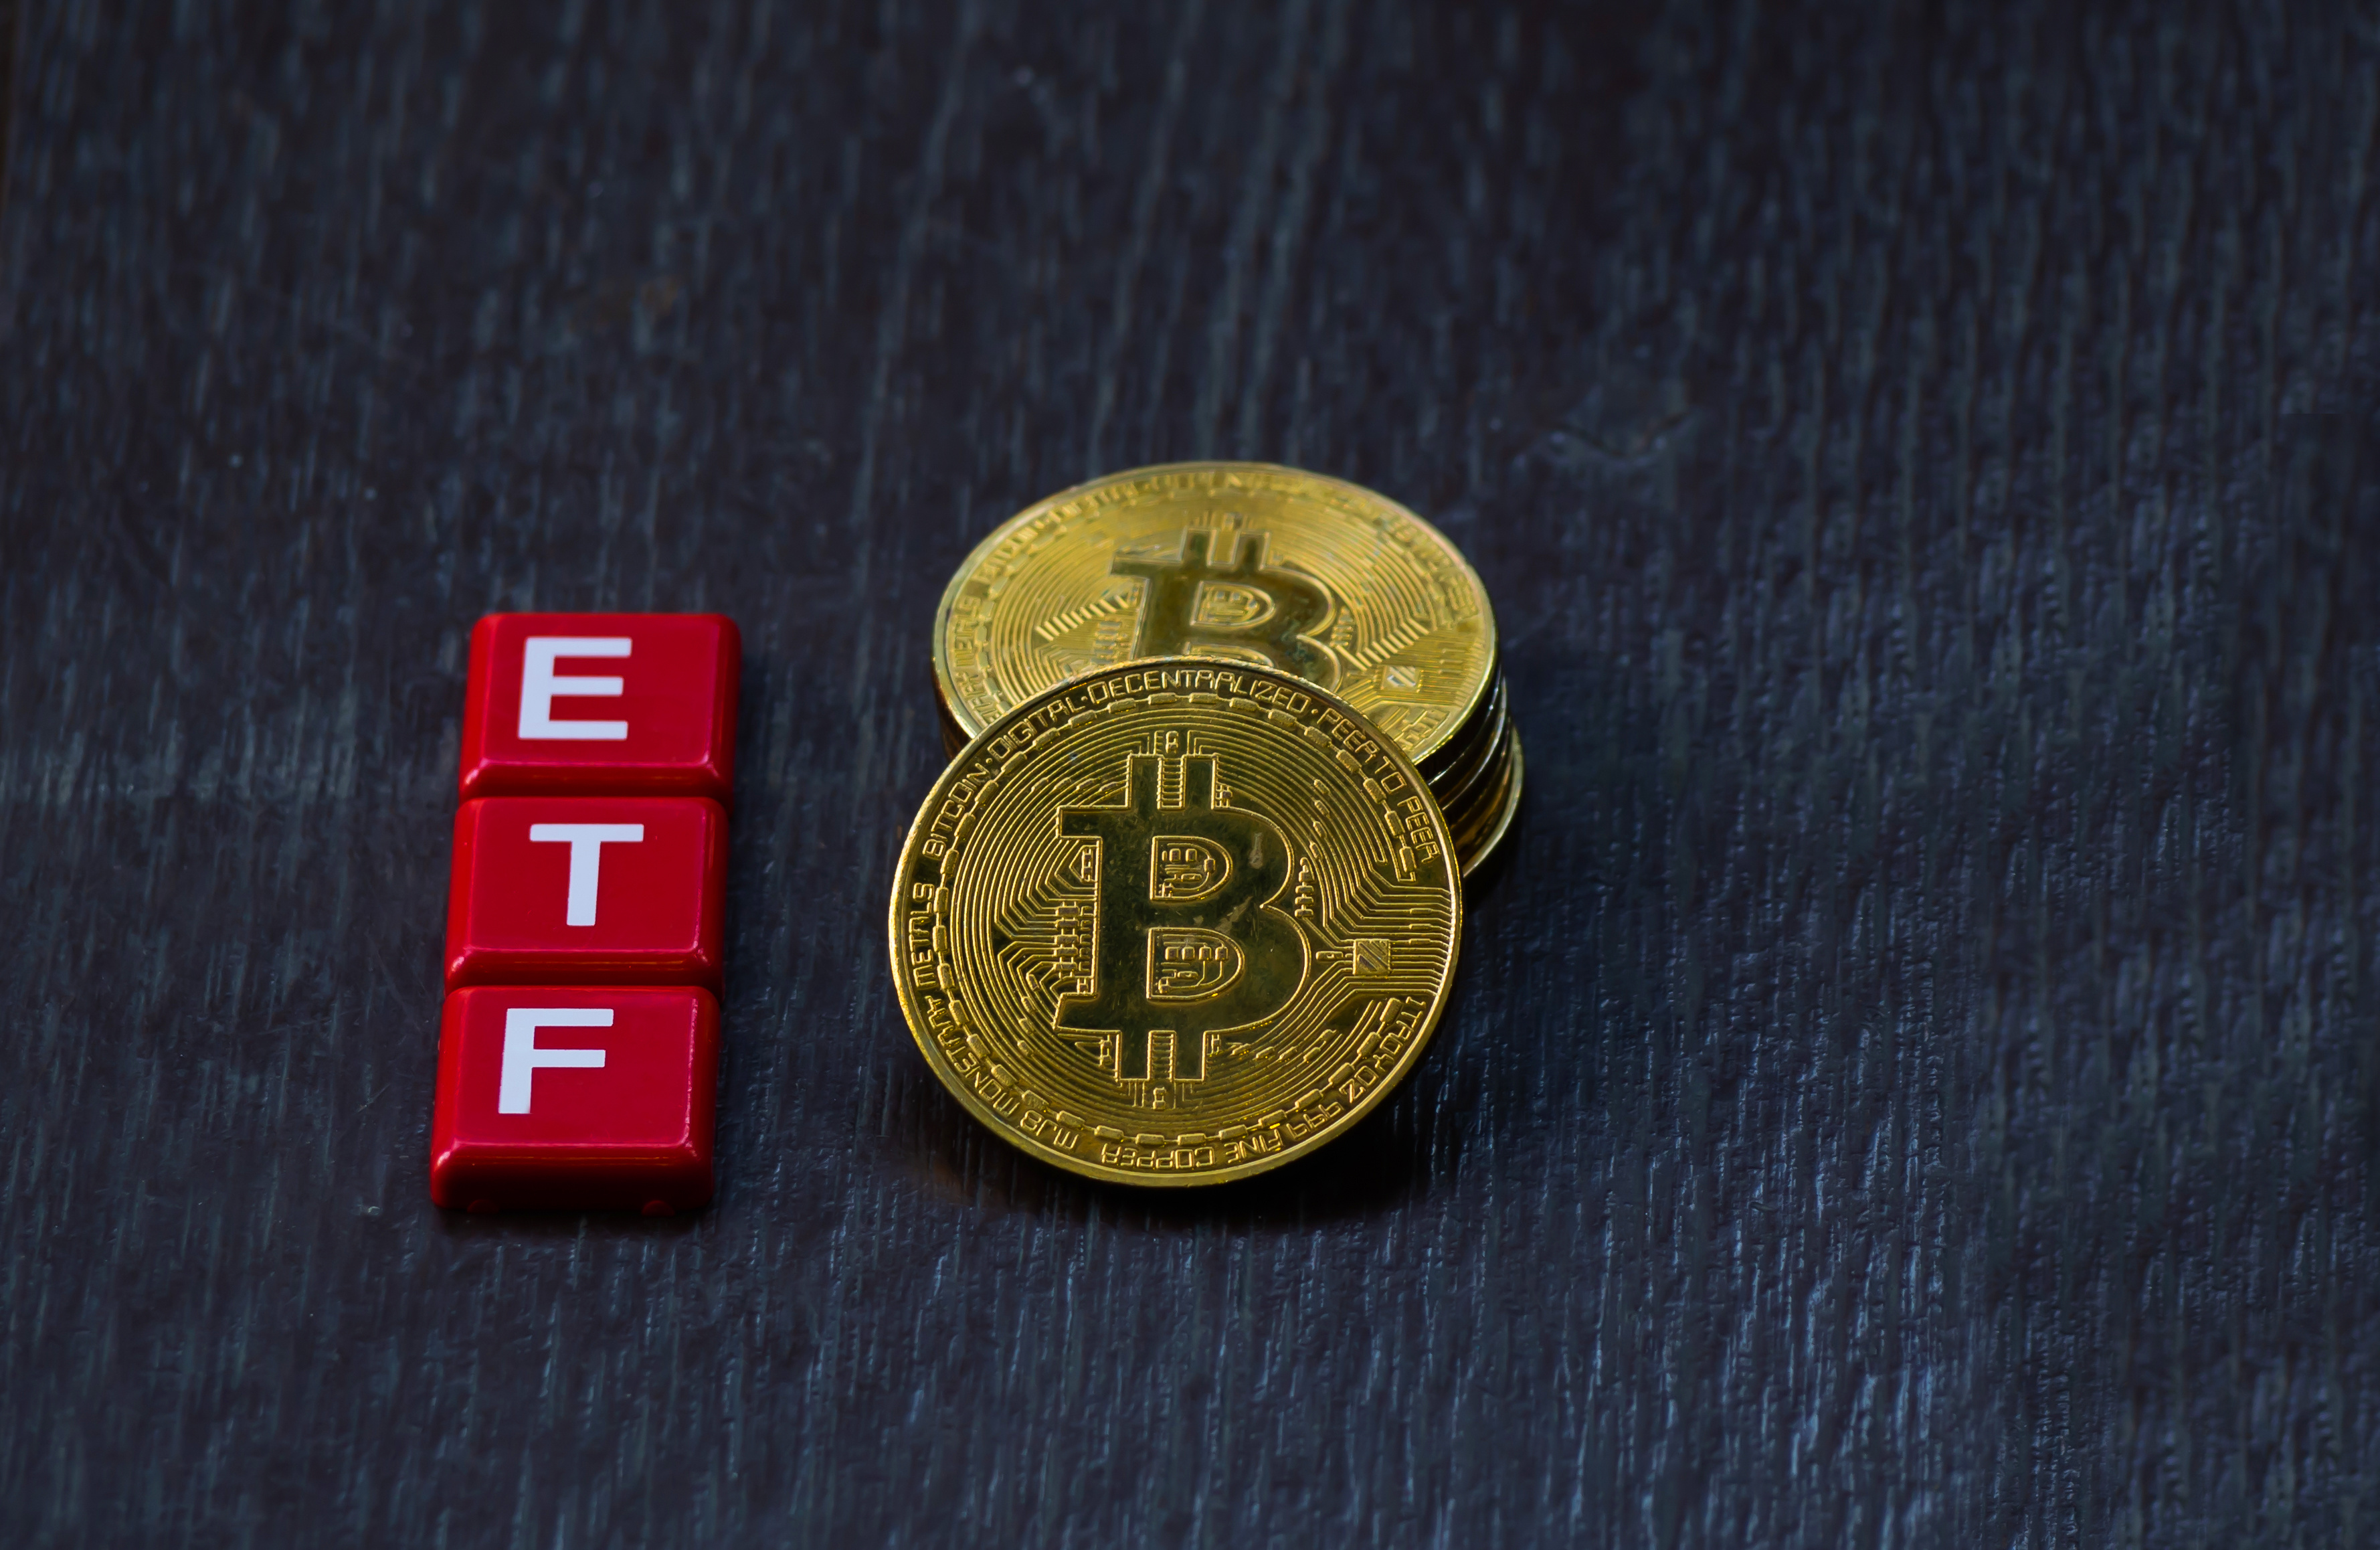 Bitcoin ETF Could Be Approved Next Month, Says Bloomberg's Mike McGlone